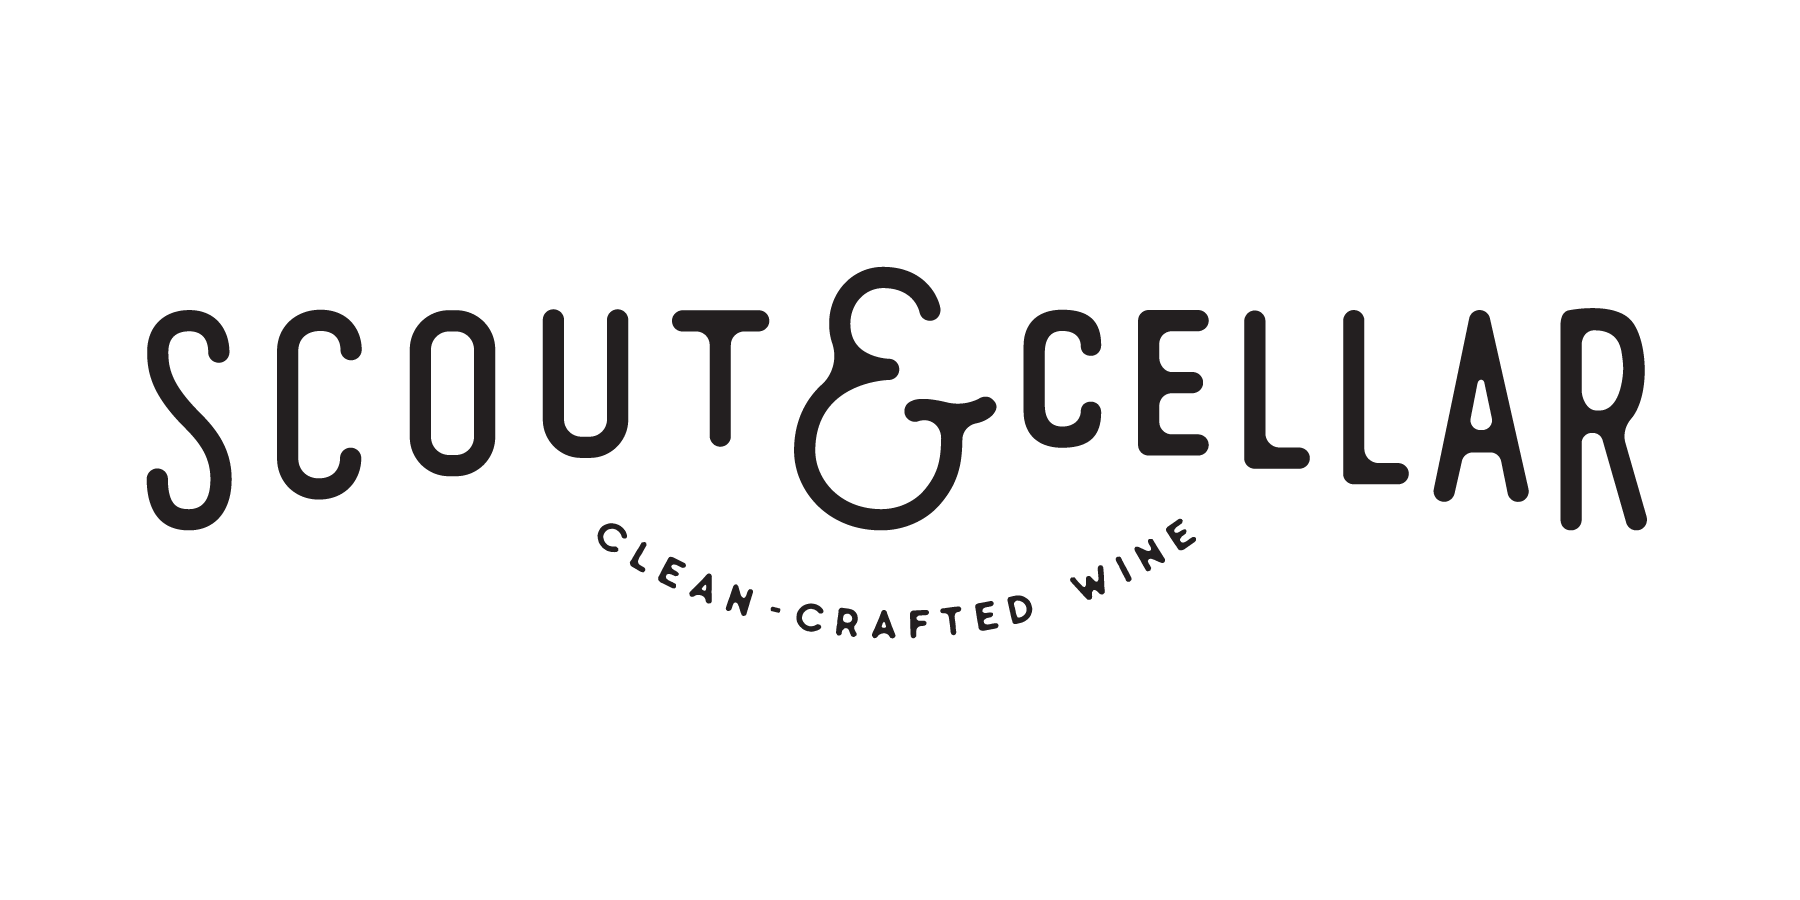 Scout and Cellar Clean Crafted Wine